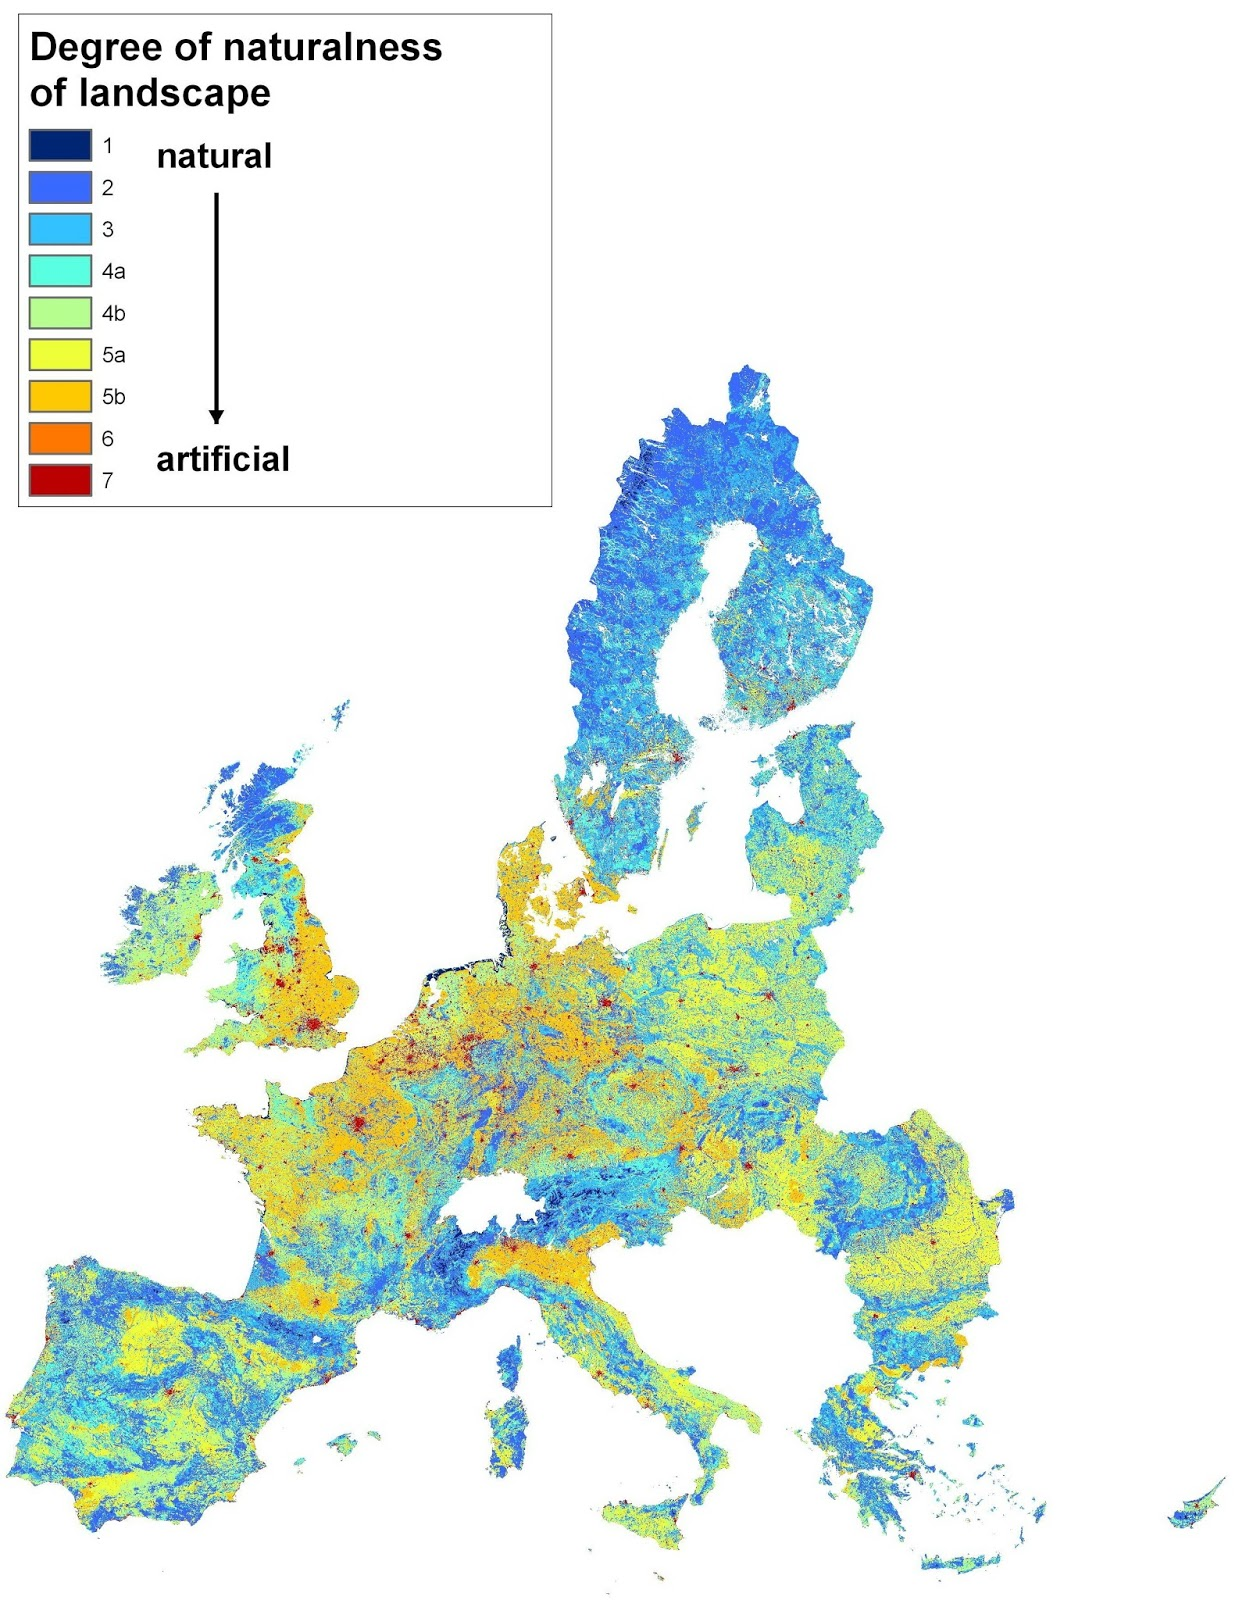 Degree of hemeroby (naturalness) of the overall landscape in EU countries (1996 - 2005)